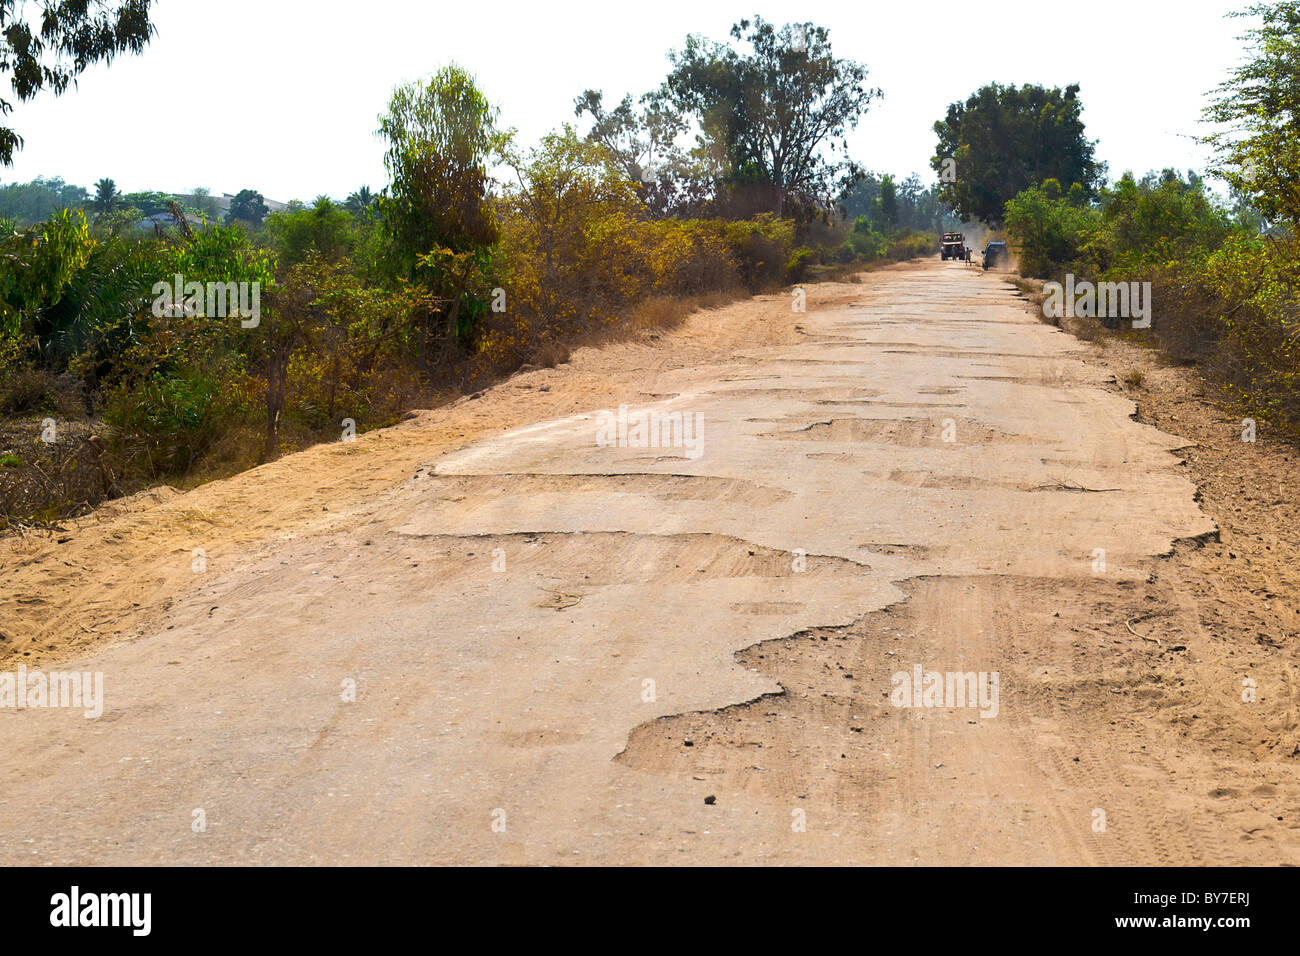 The dilapidated tar road leading out of the town of Morondava on the southwestern coast of Madagascar. - Stock Image